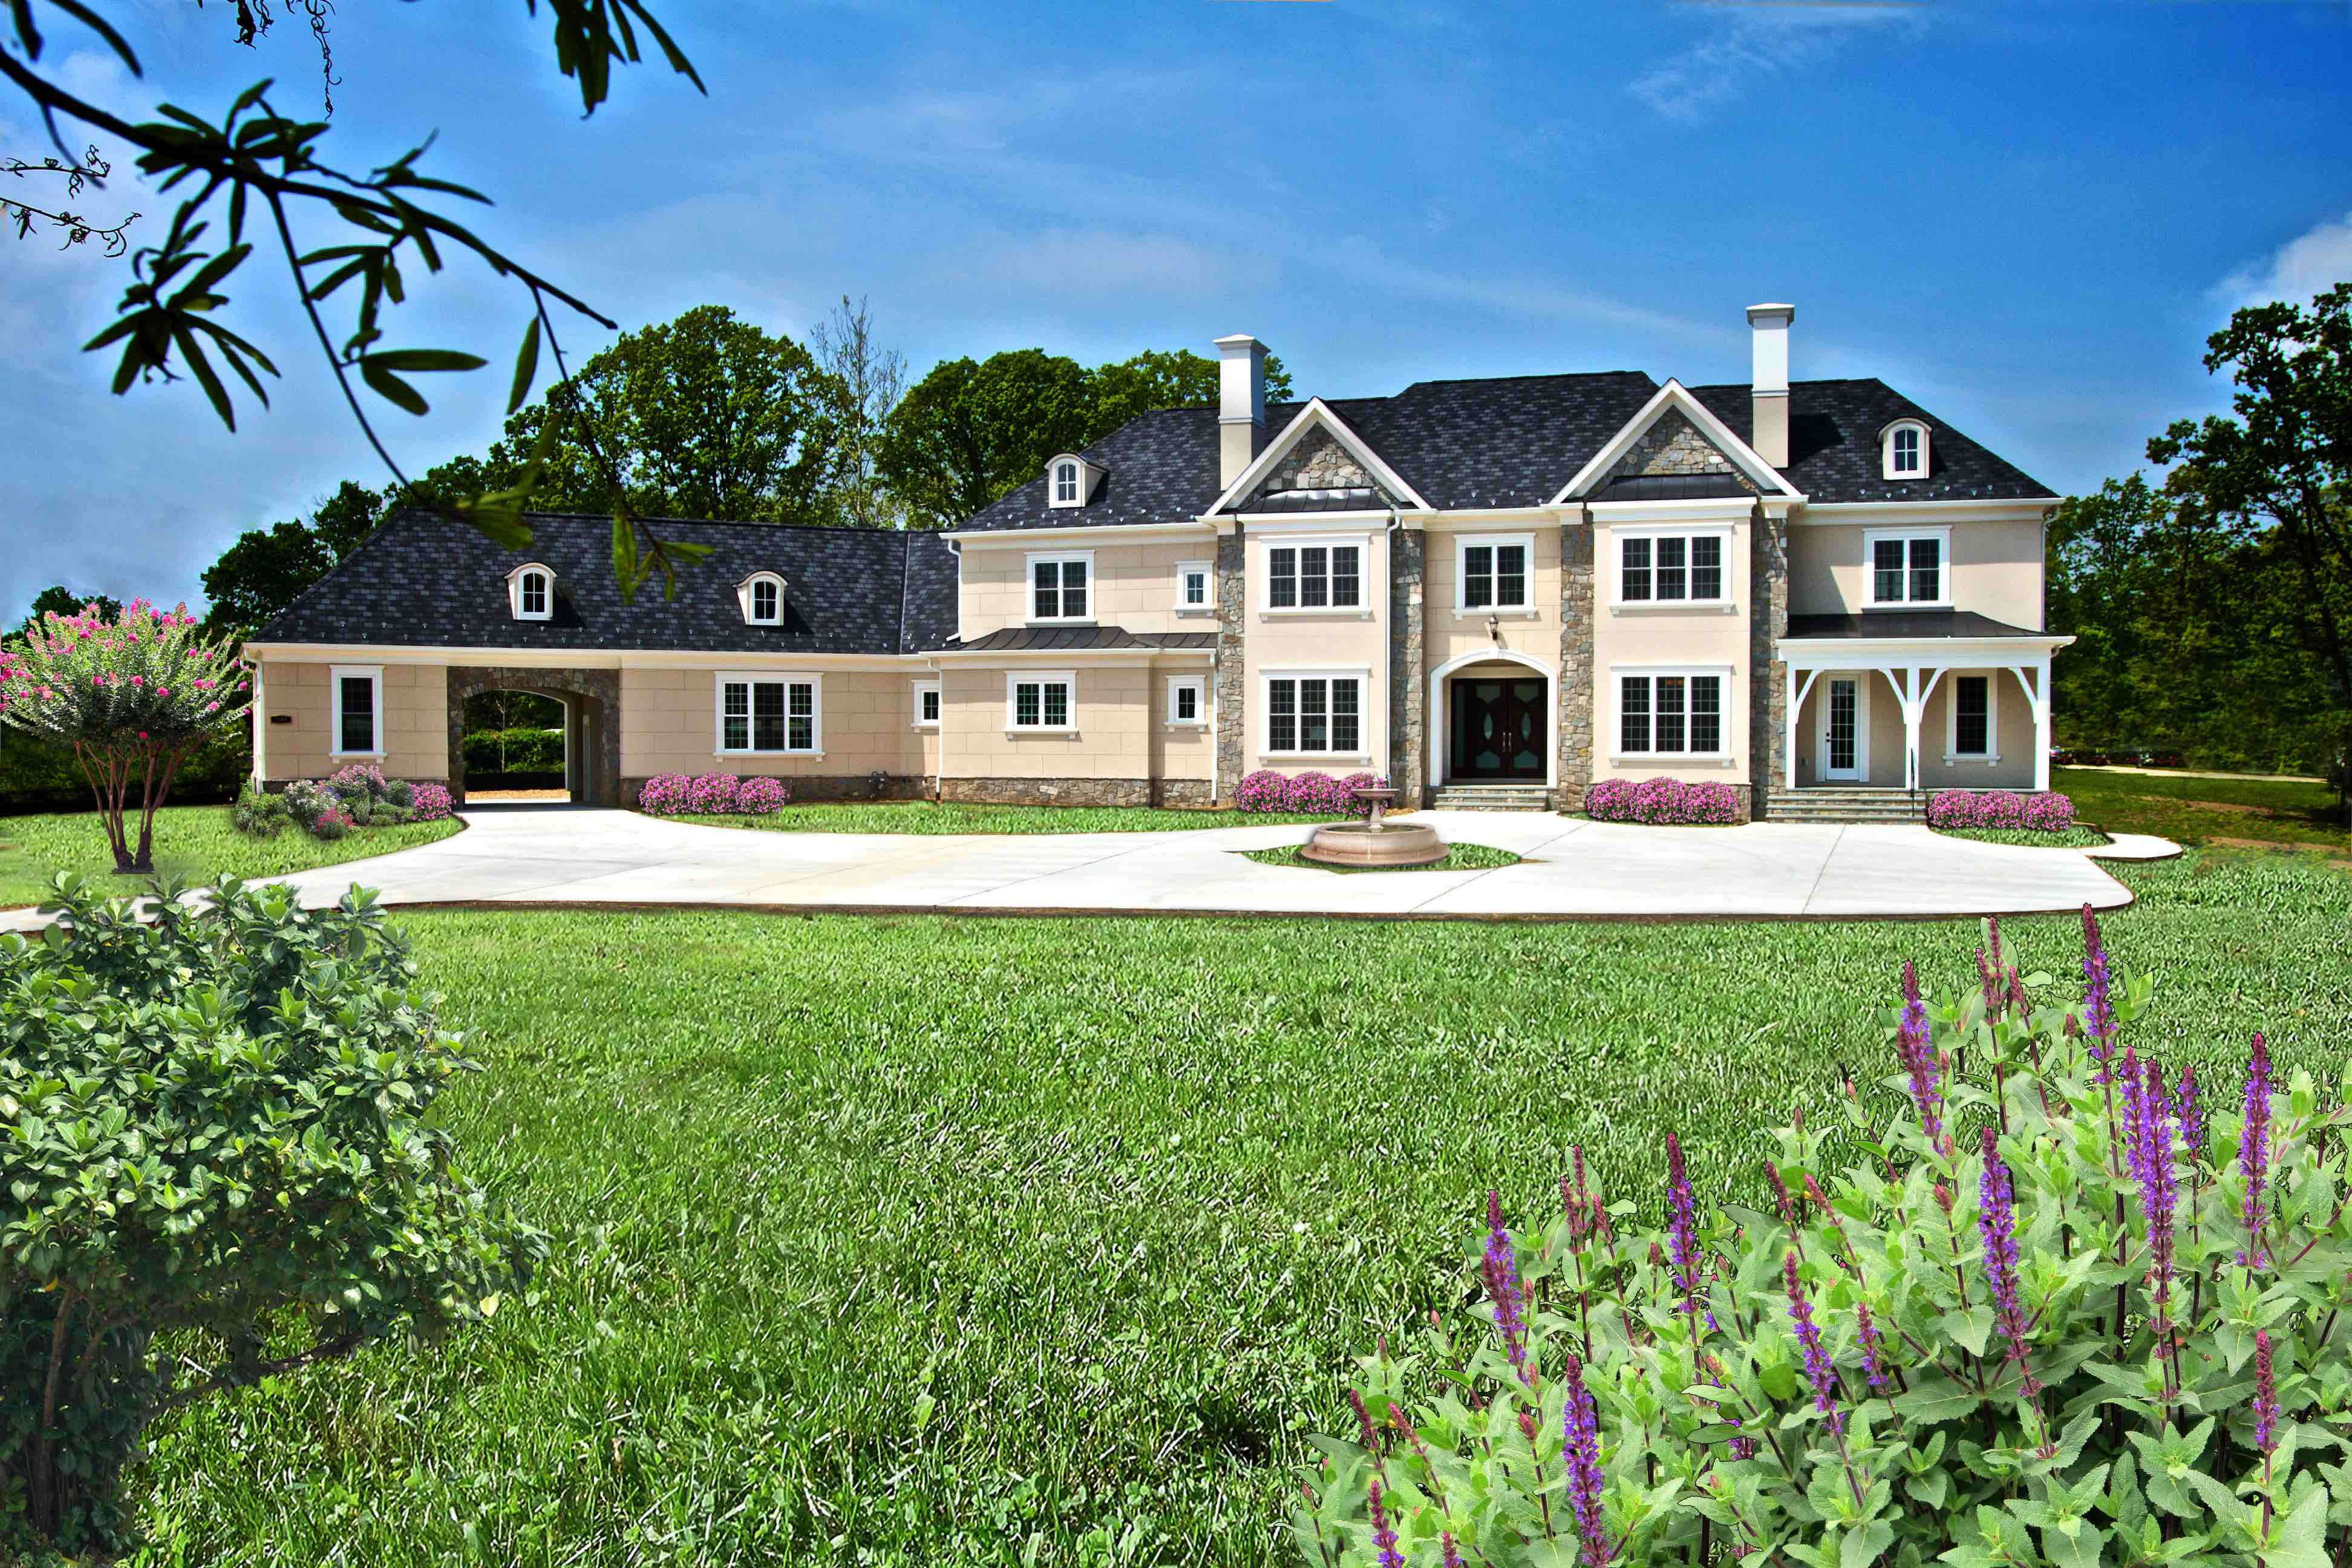 Single Family for Sale at By Botero Homes In Clifton-English Manor Iii -Future Construction Yates Ford Rd Clifton, Virginia 20124 United States